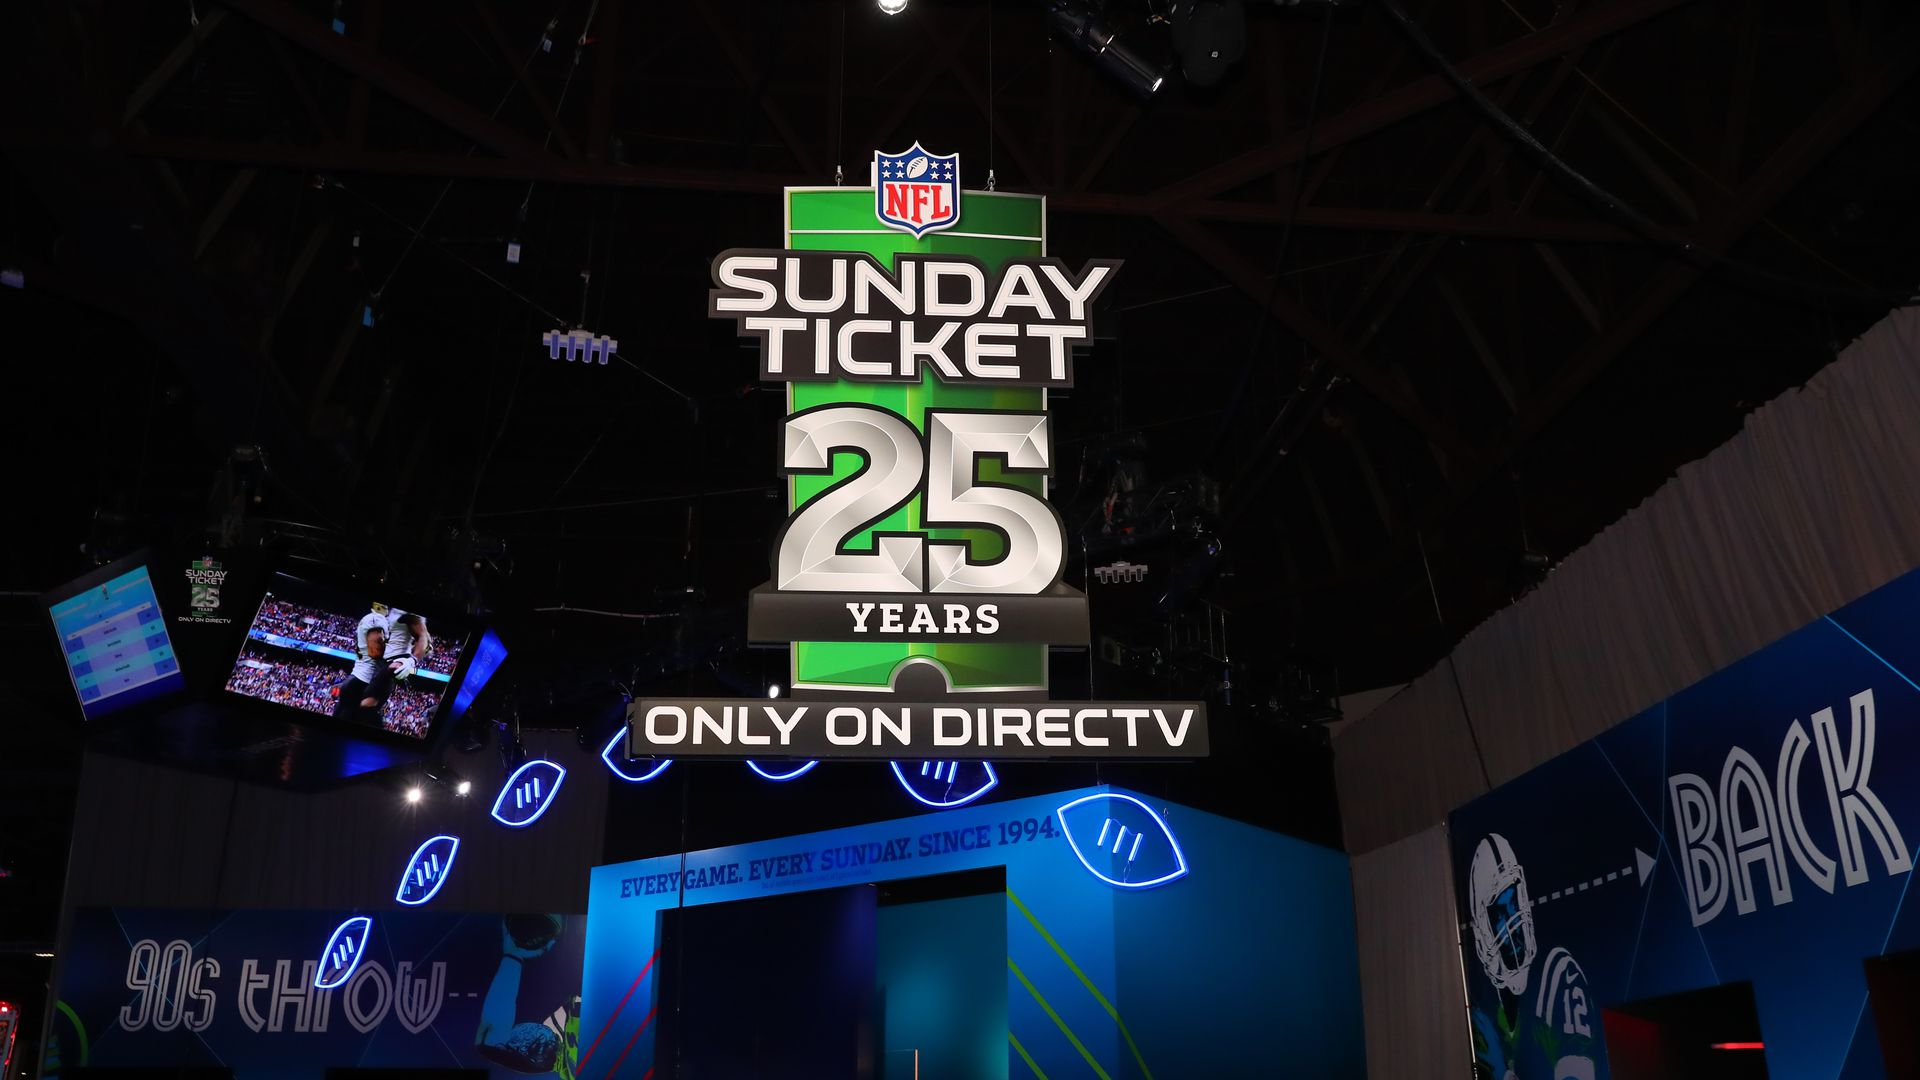 AT&T considers dropping DirecTV's NFL Sunday Ticket deal